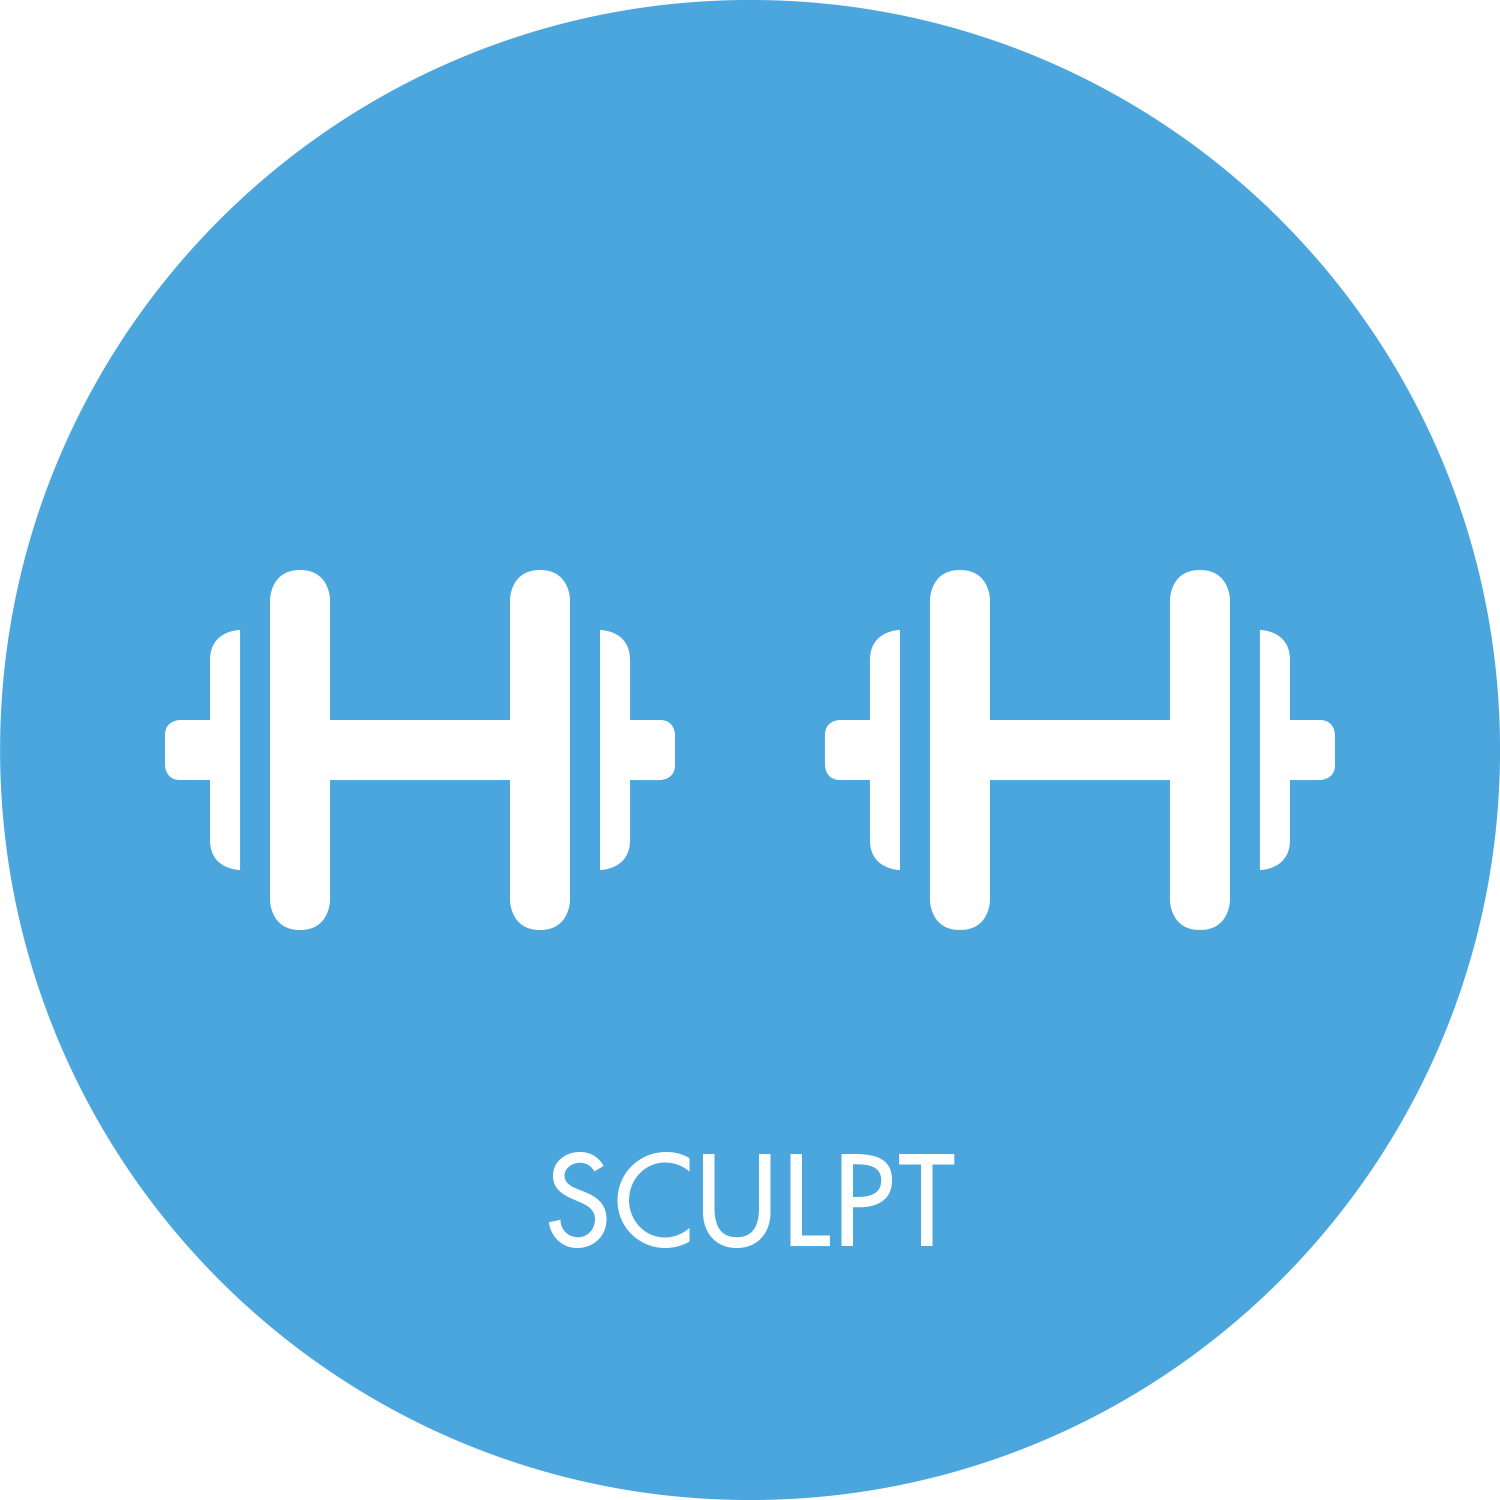 Circle_Icon_Text_Package_Sculpt.png